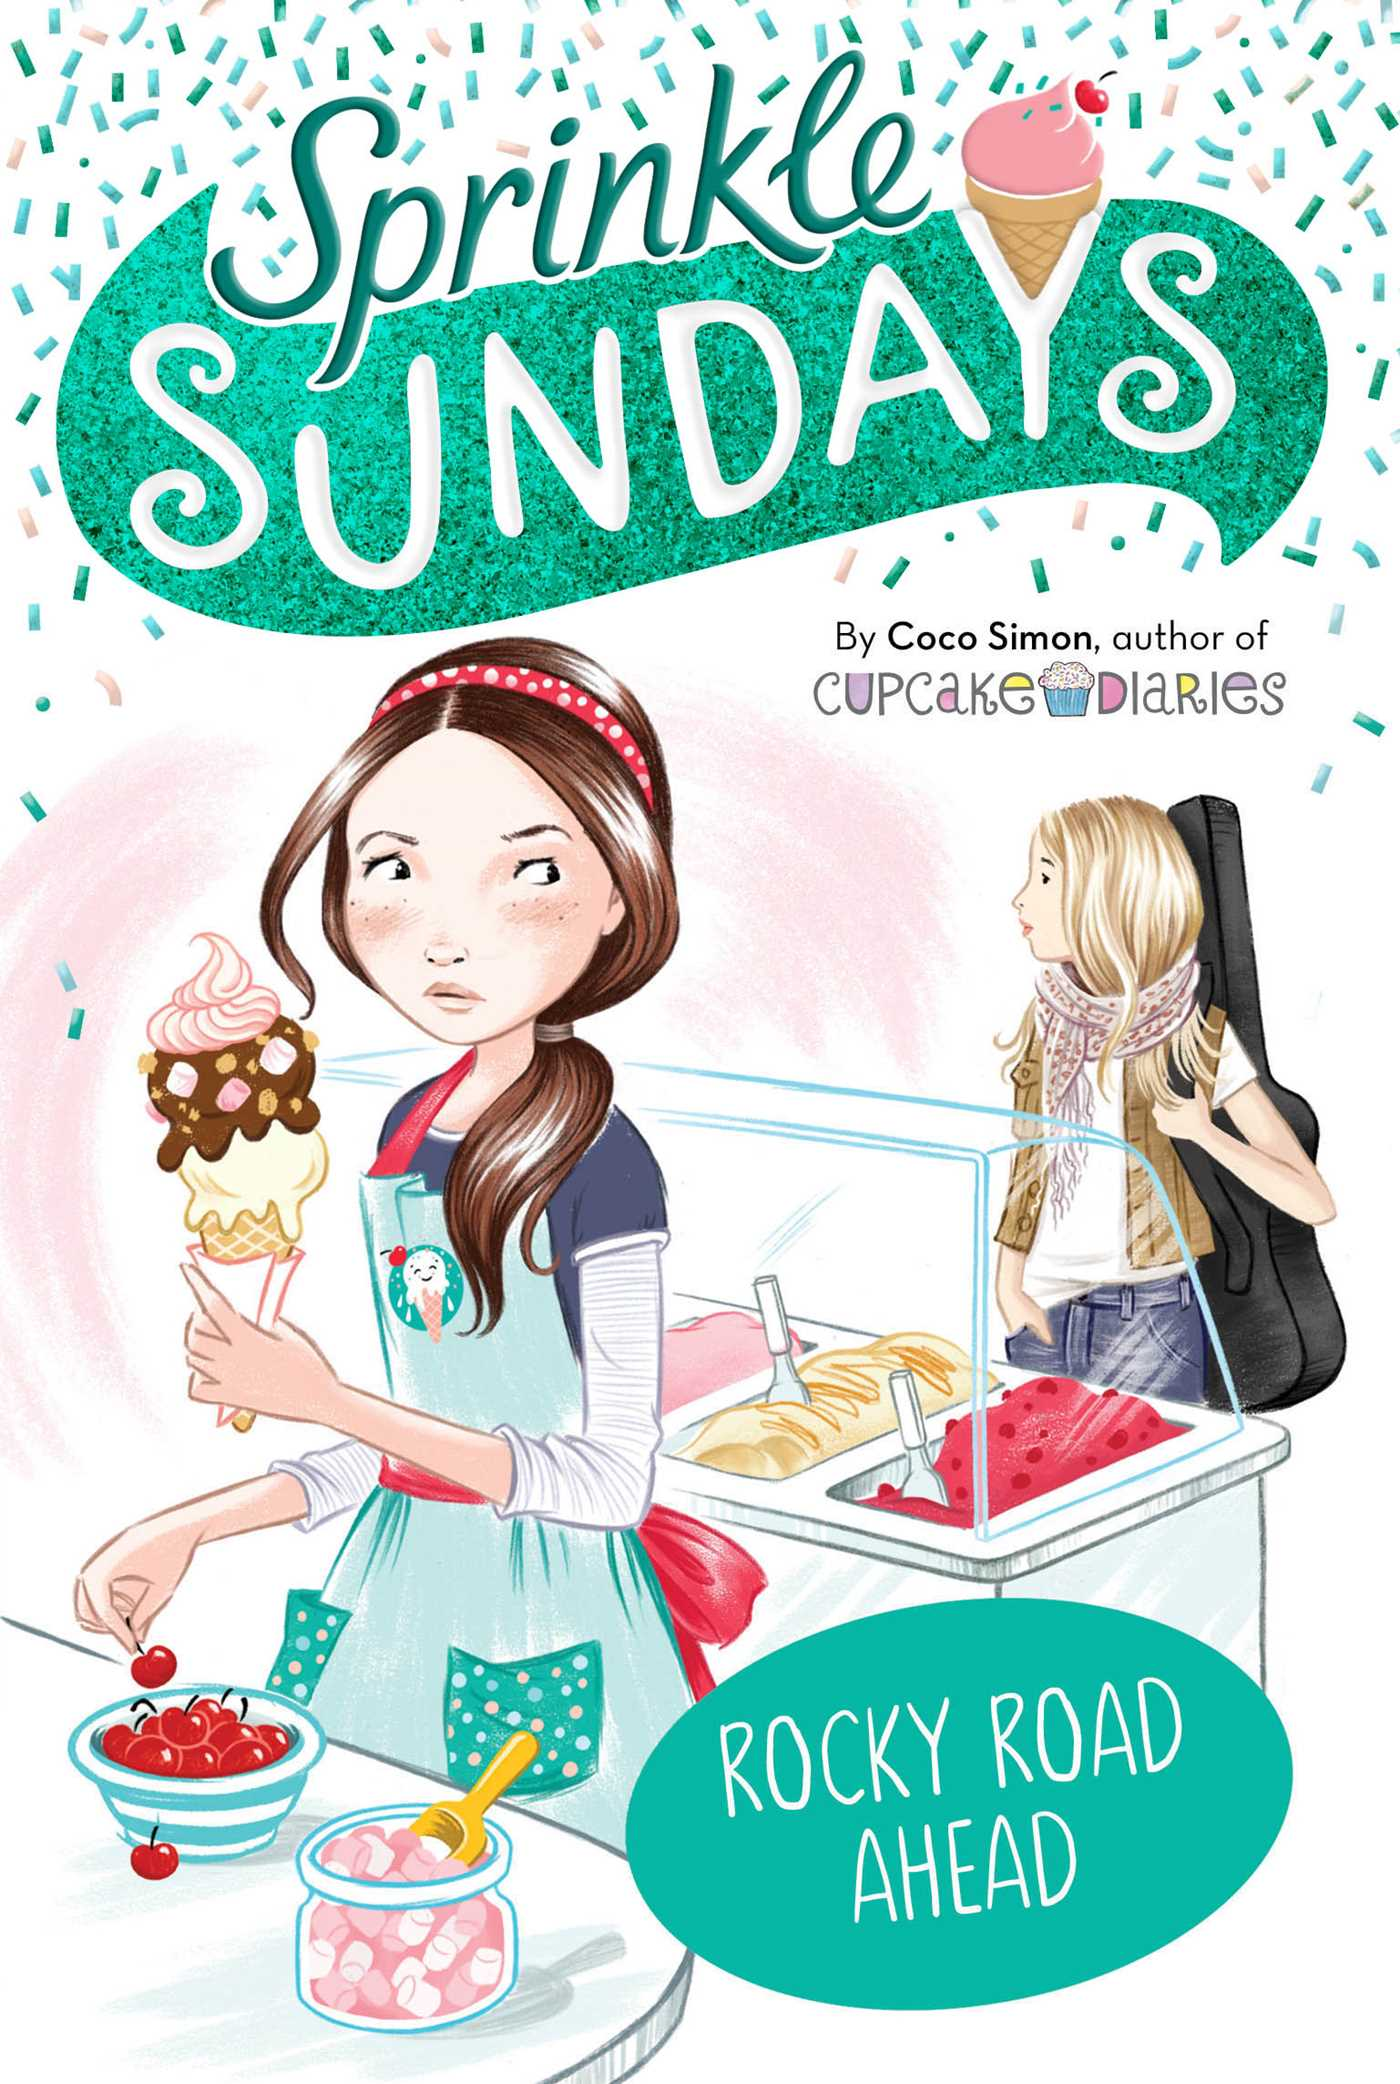 Rocky road ahead cover image